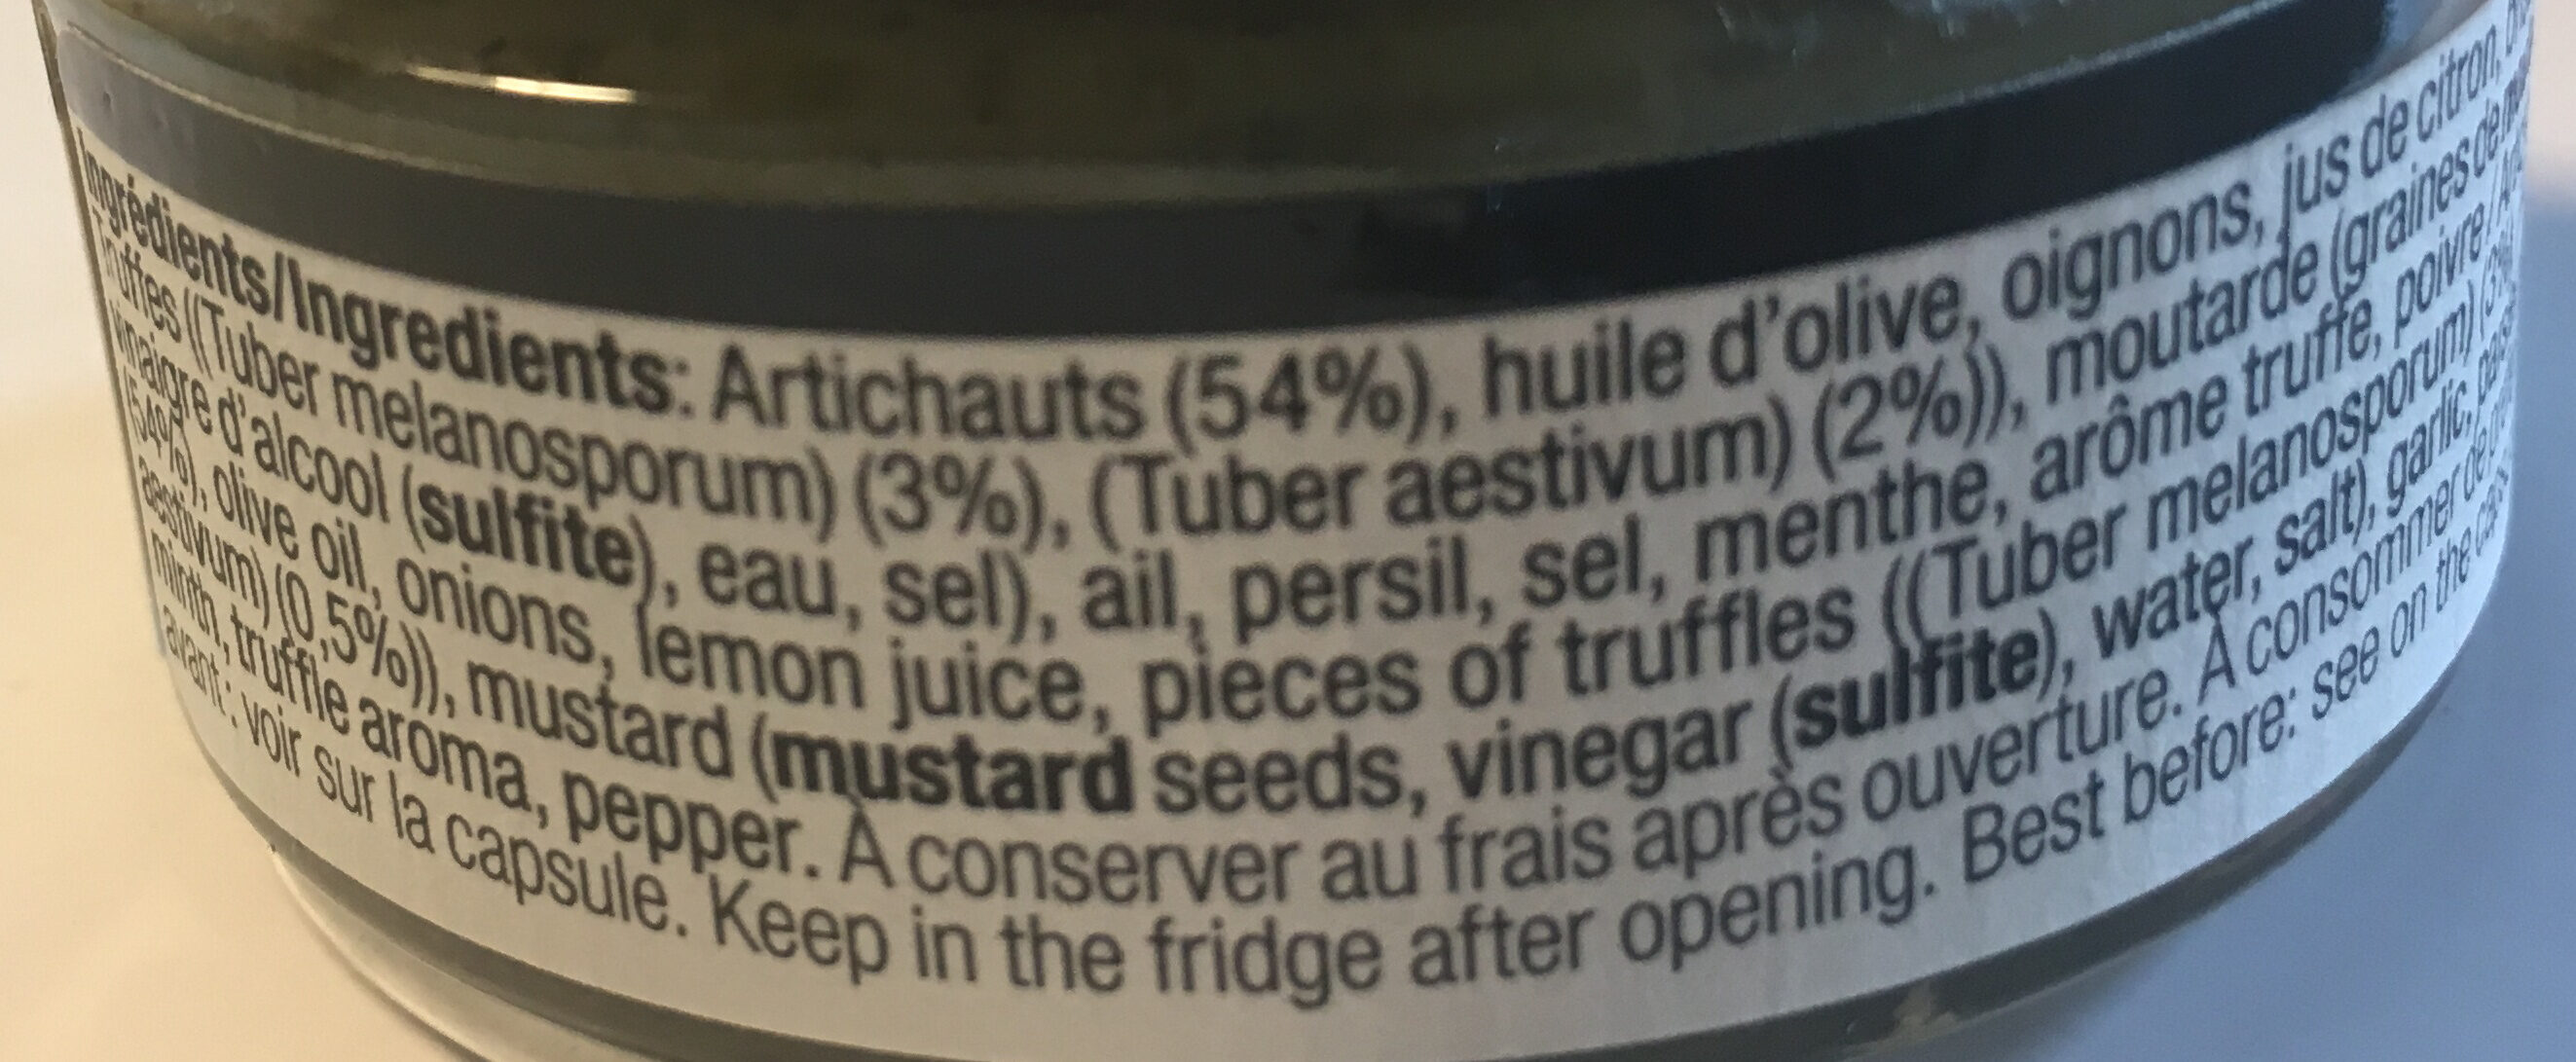 Crème d'artichaut à la truffe - Ingredients